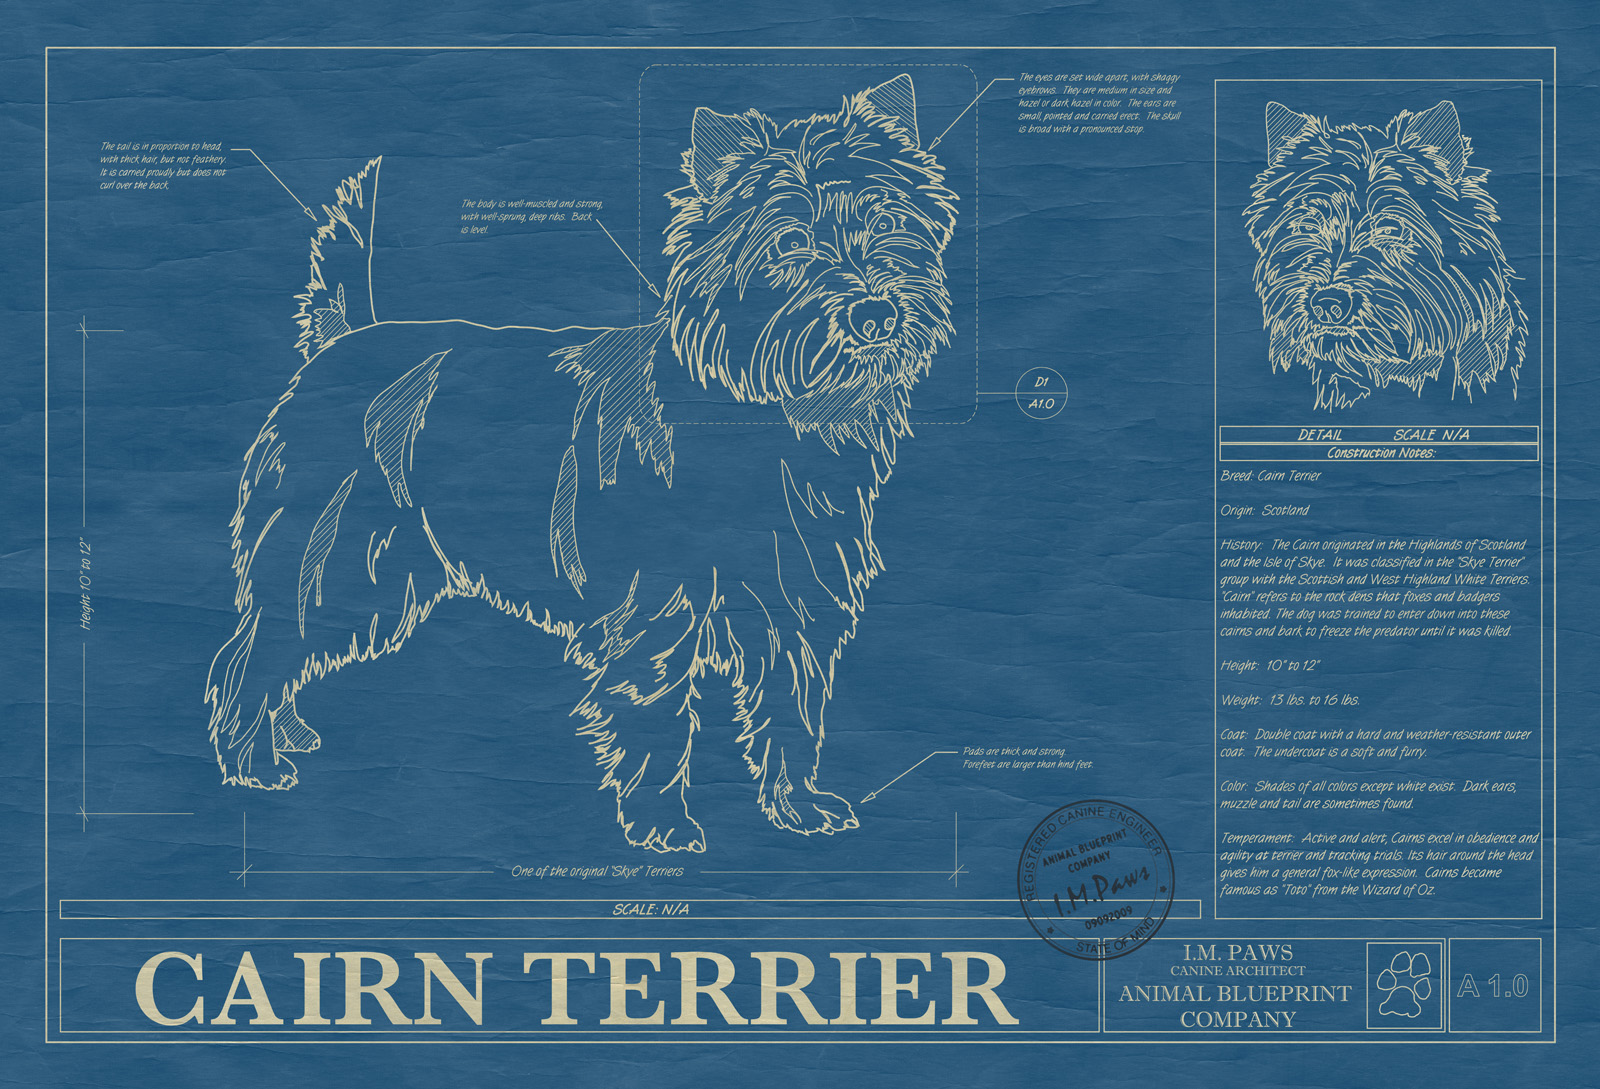 Cairn terrier animal blueprint company cairn terrier dog blueprint malvernweather Gallery